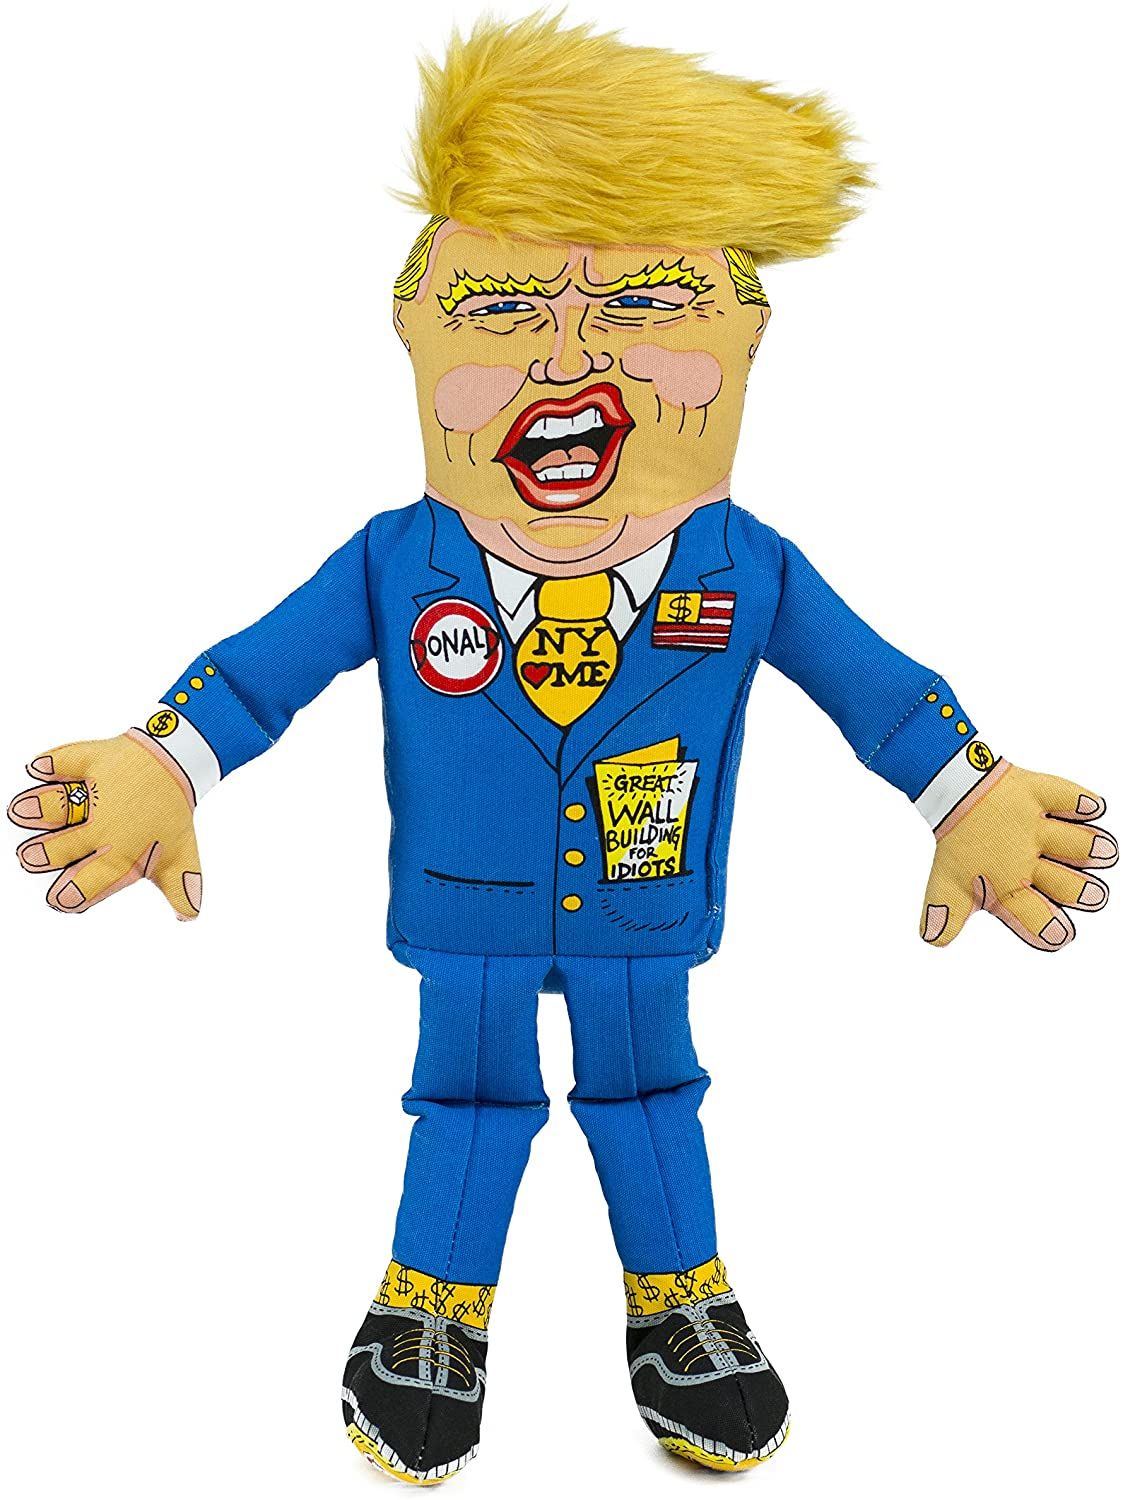 fuzzutoys donald trump dog toy distributor kl